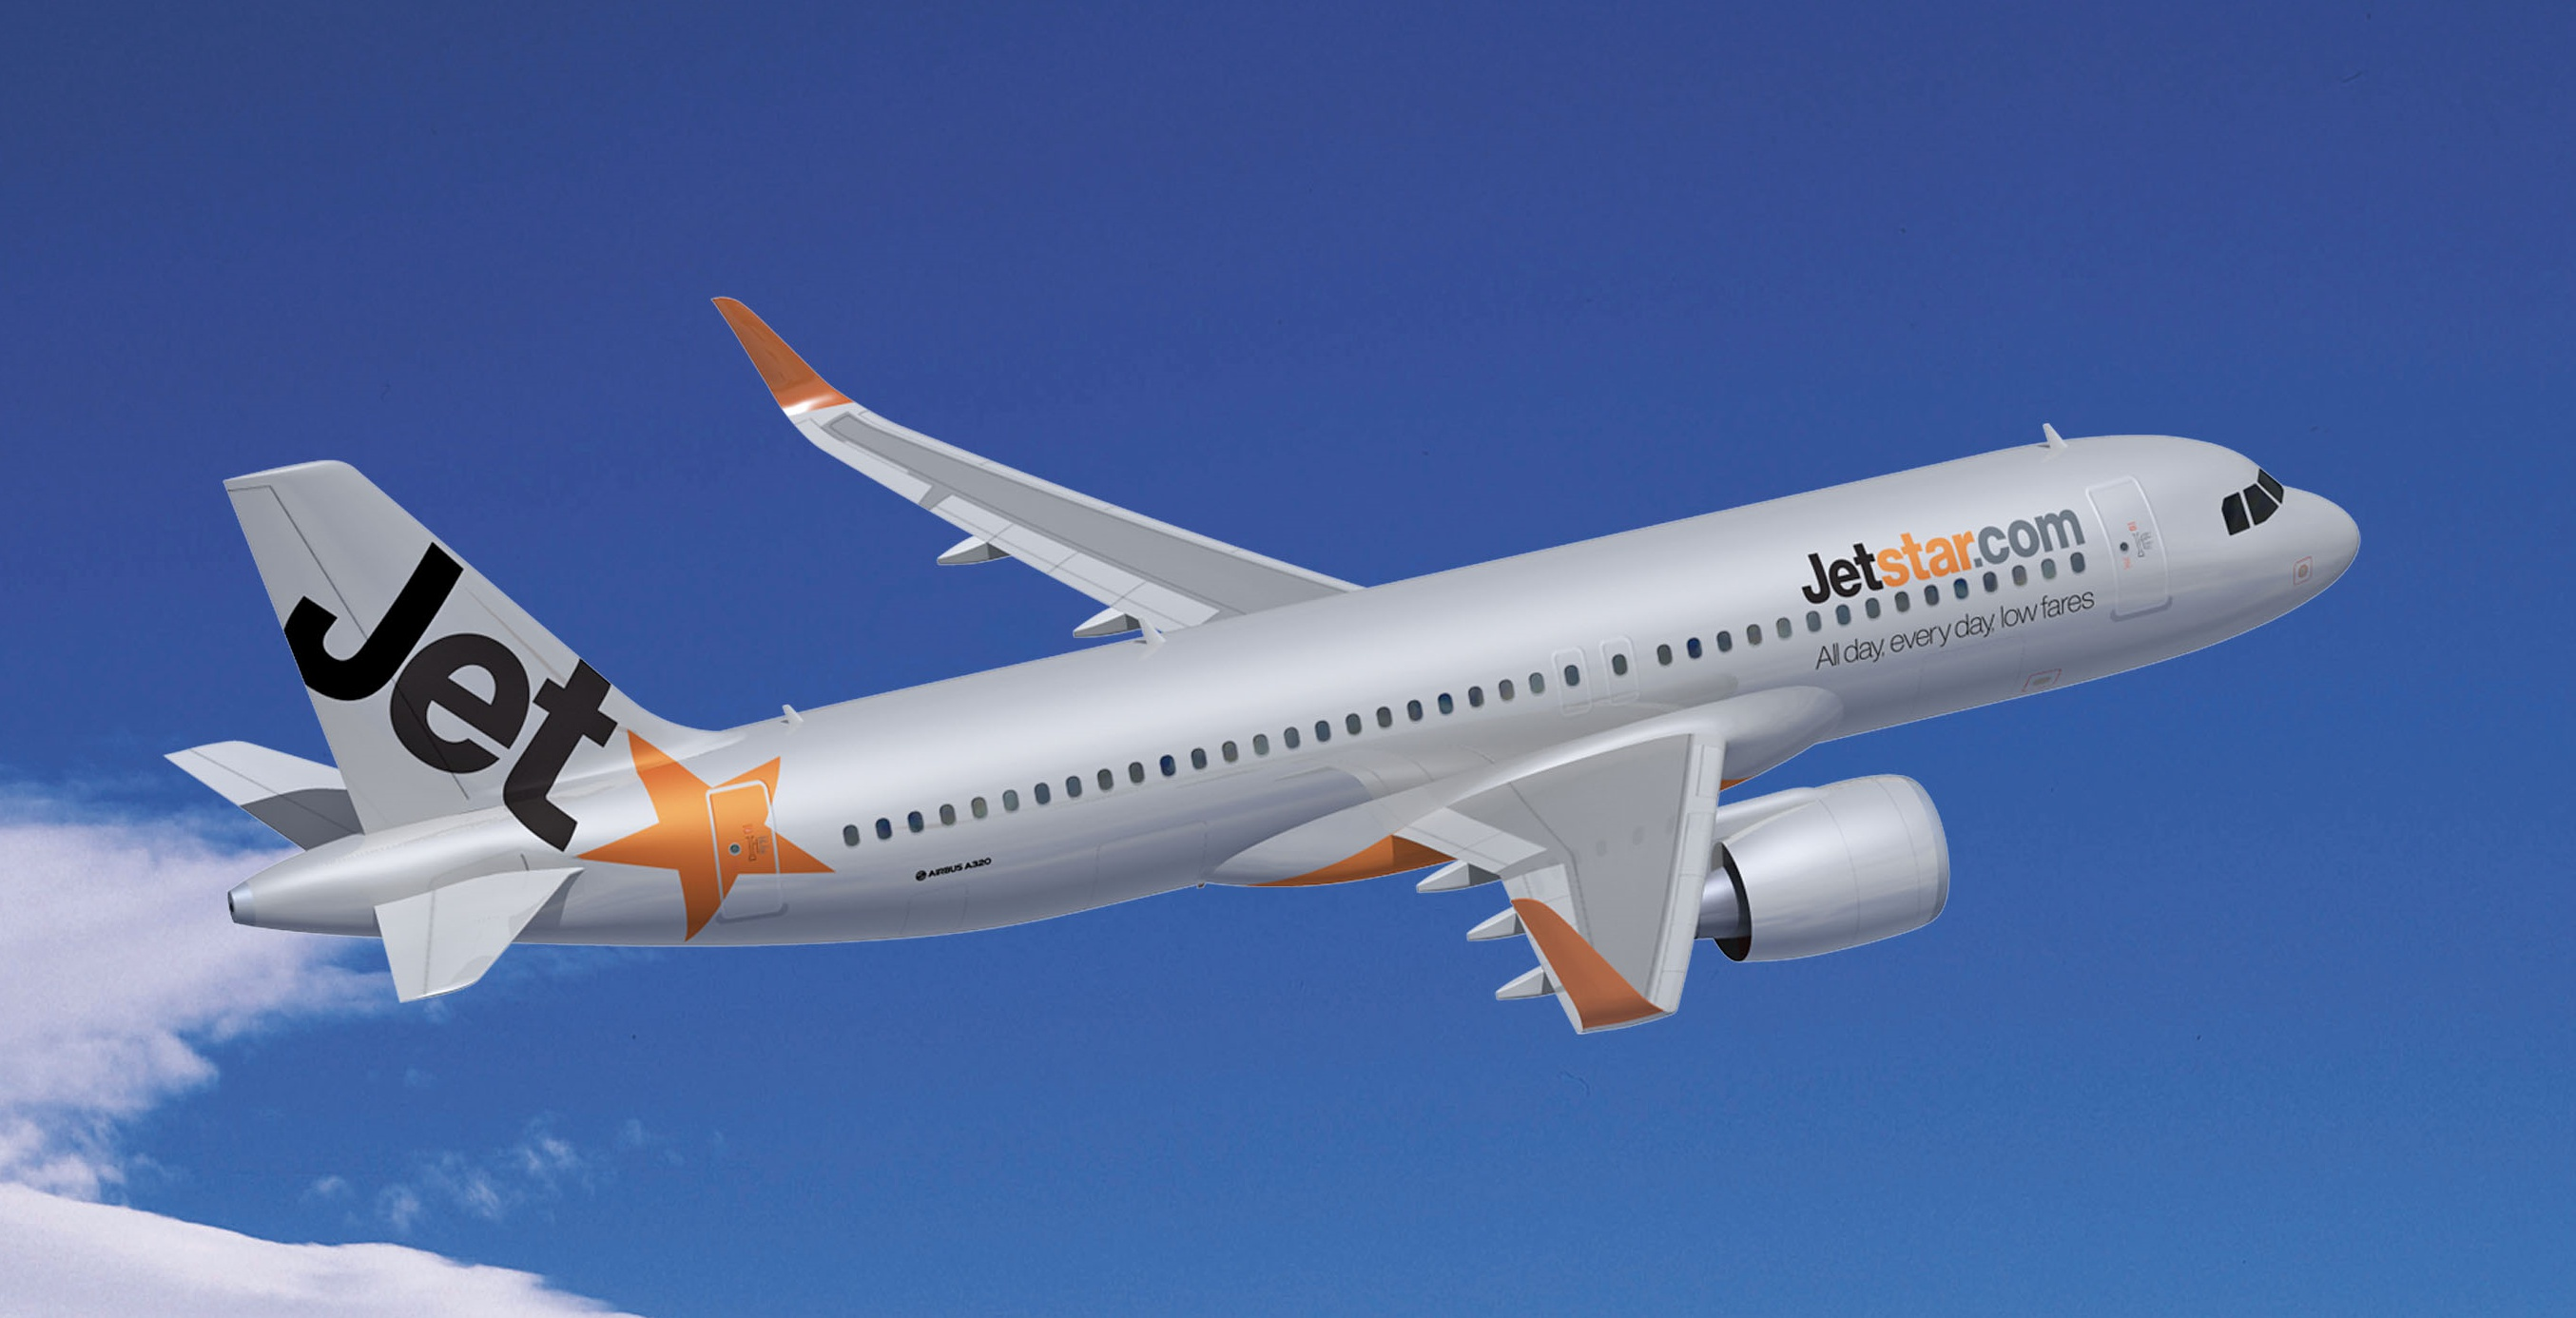 jetstar flights - photo #5